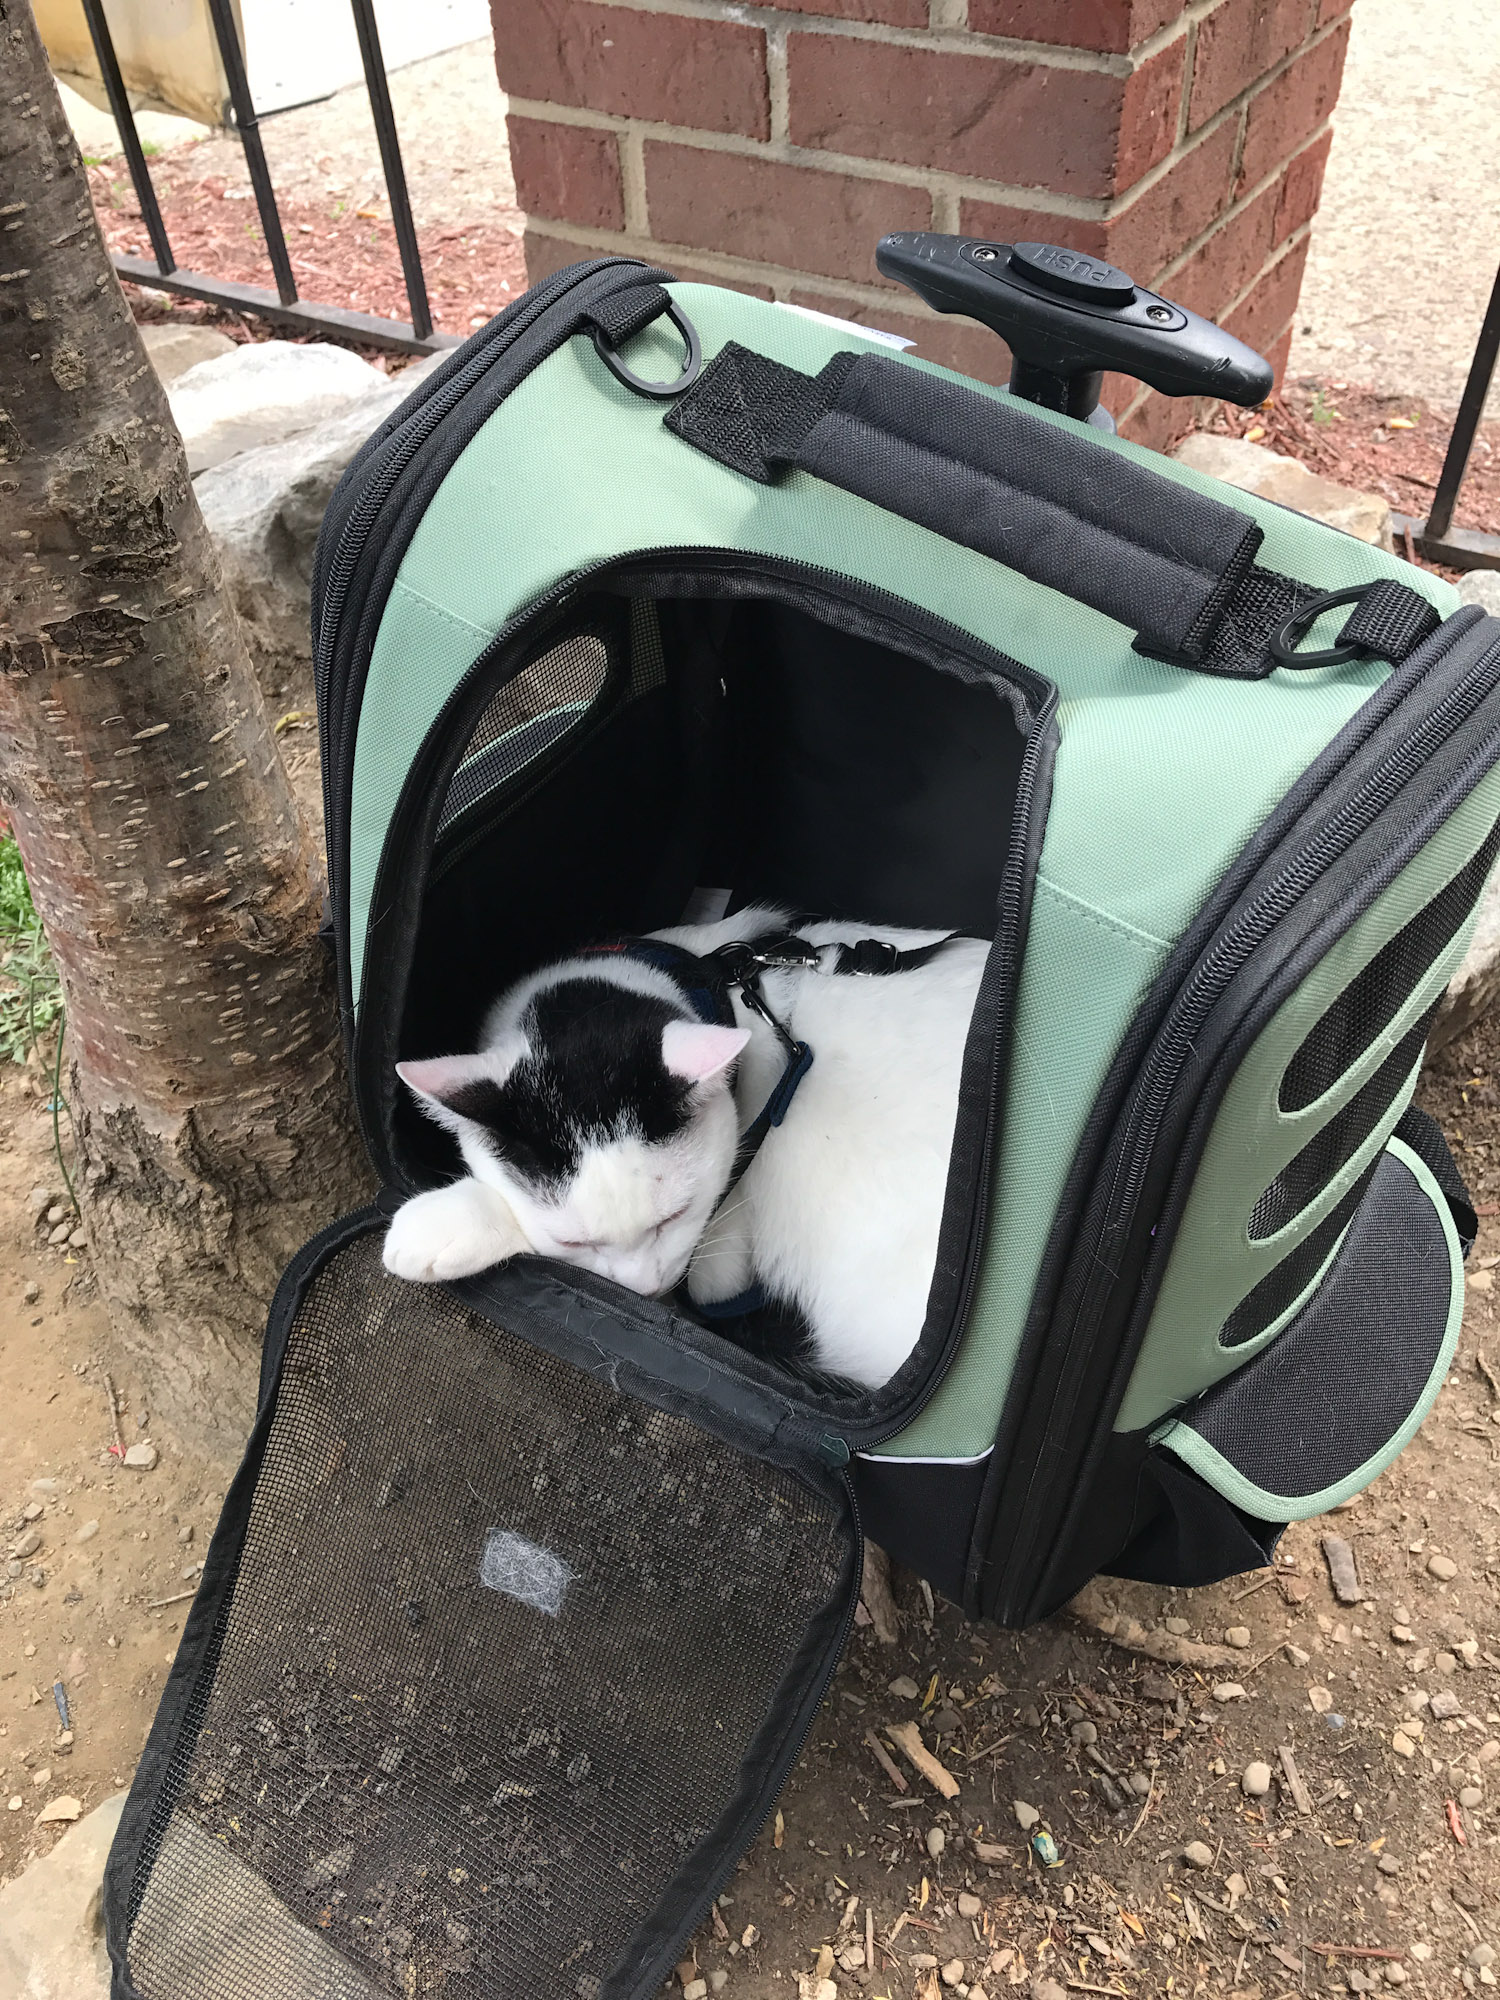 Milo the adventure cat napping in backpack